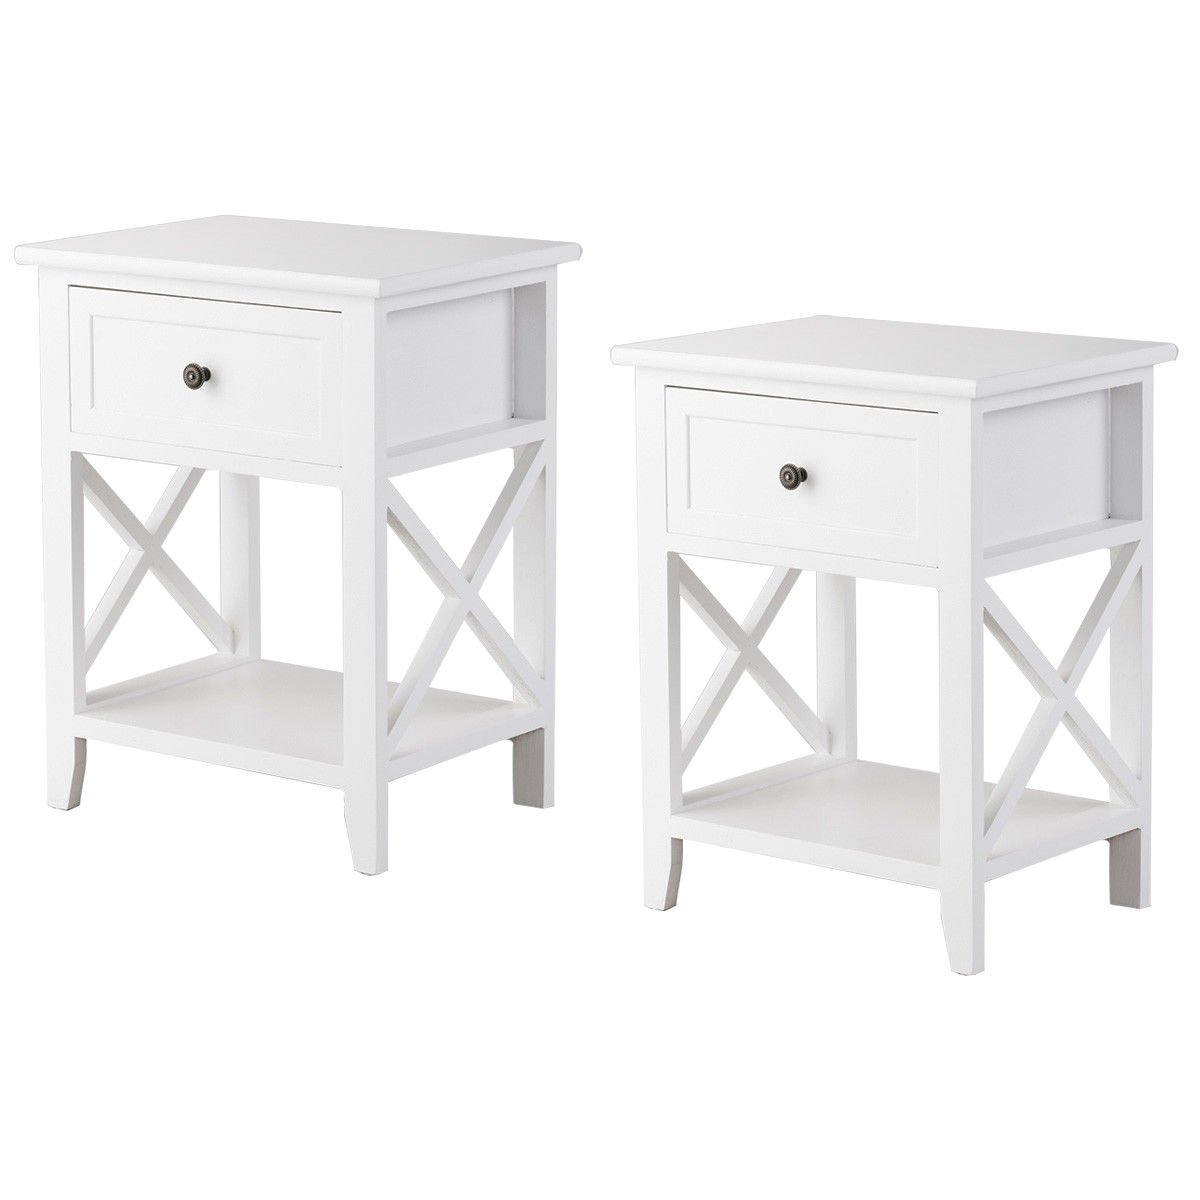 Giantex Set of 2 Wooden Nightstand W/Drawer and Bottom Open Shelf Stable Frame for Bedroom Home Furniture X-Shape, White End Bedside Table